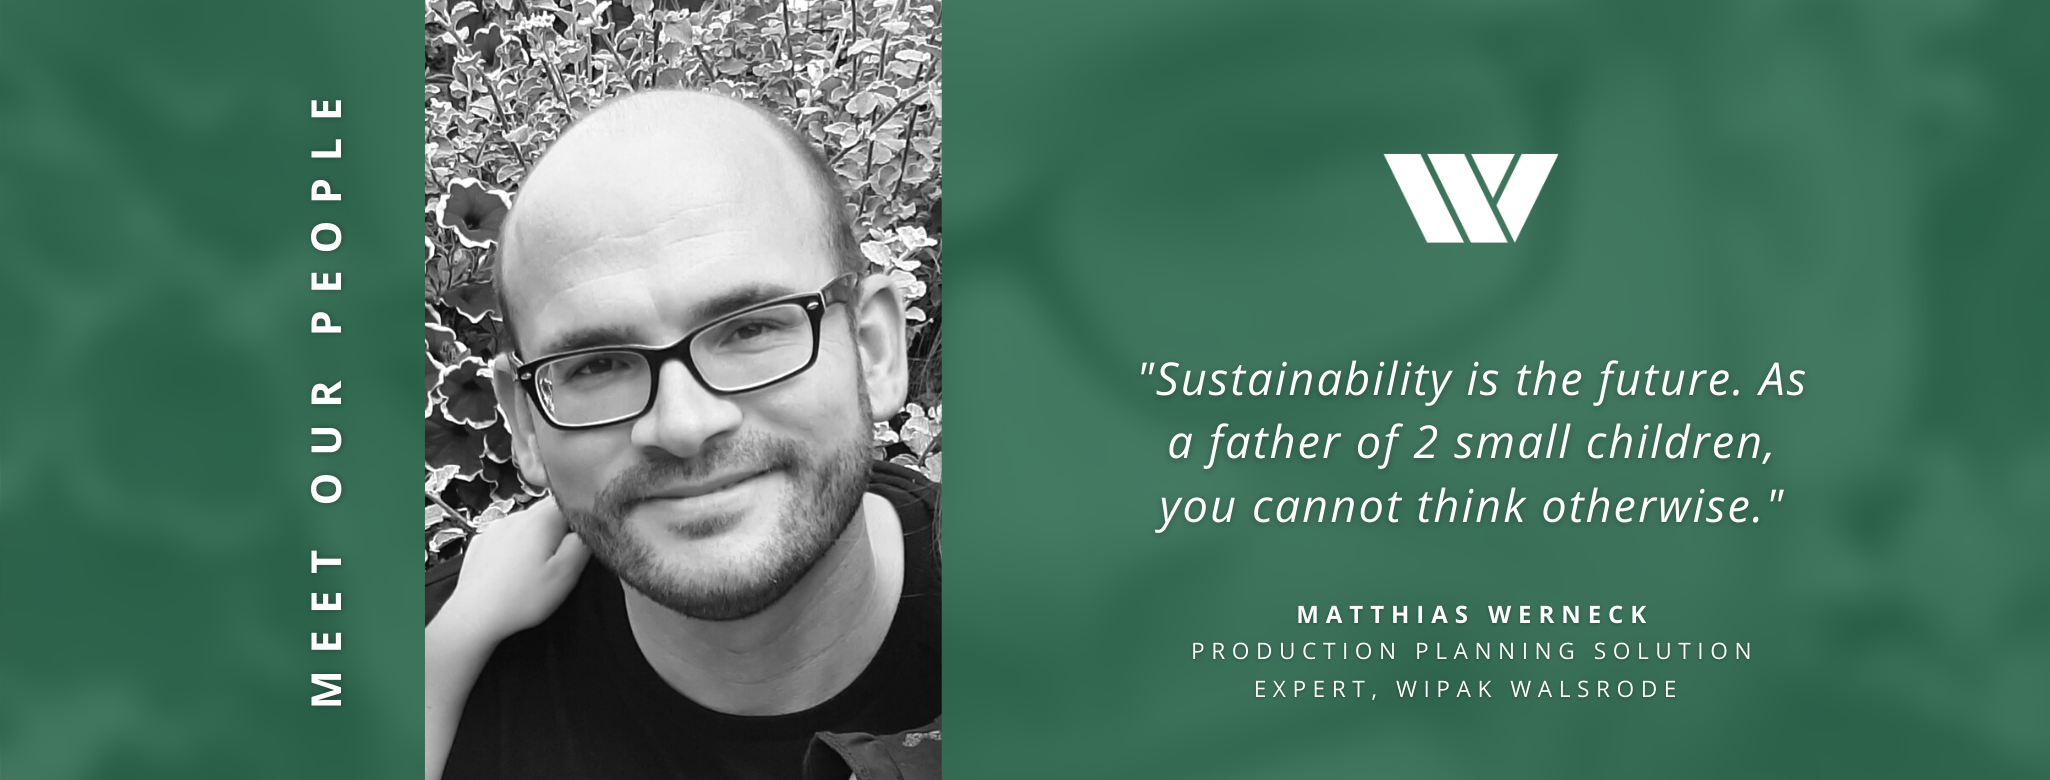 Meet our colleague, Matthias Werneck